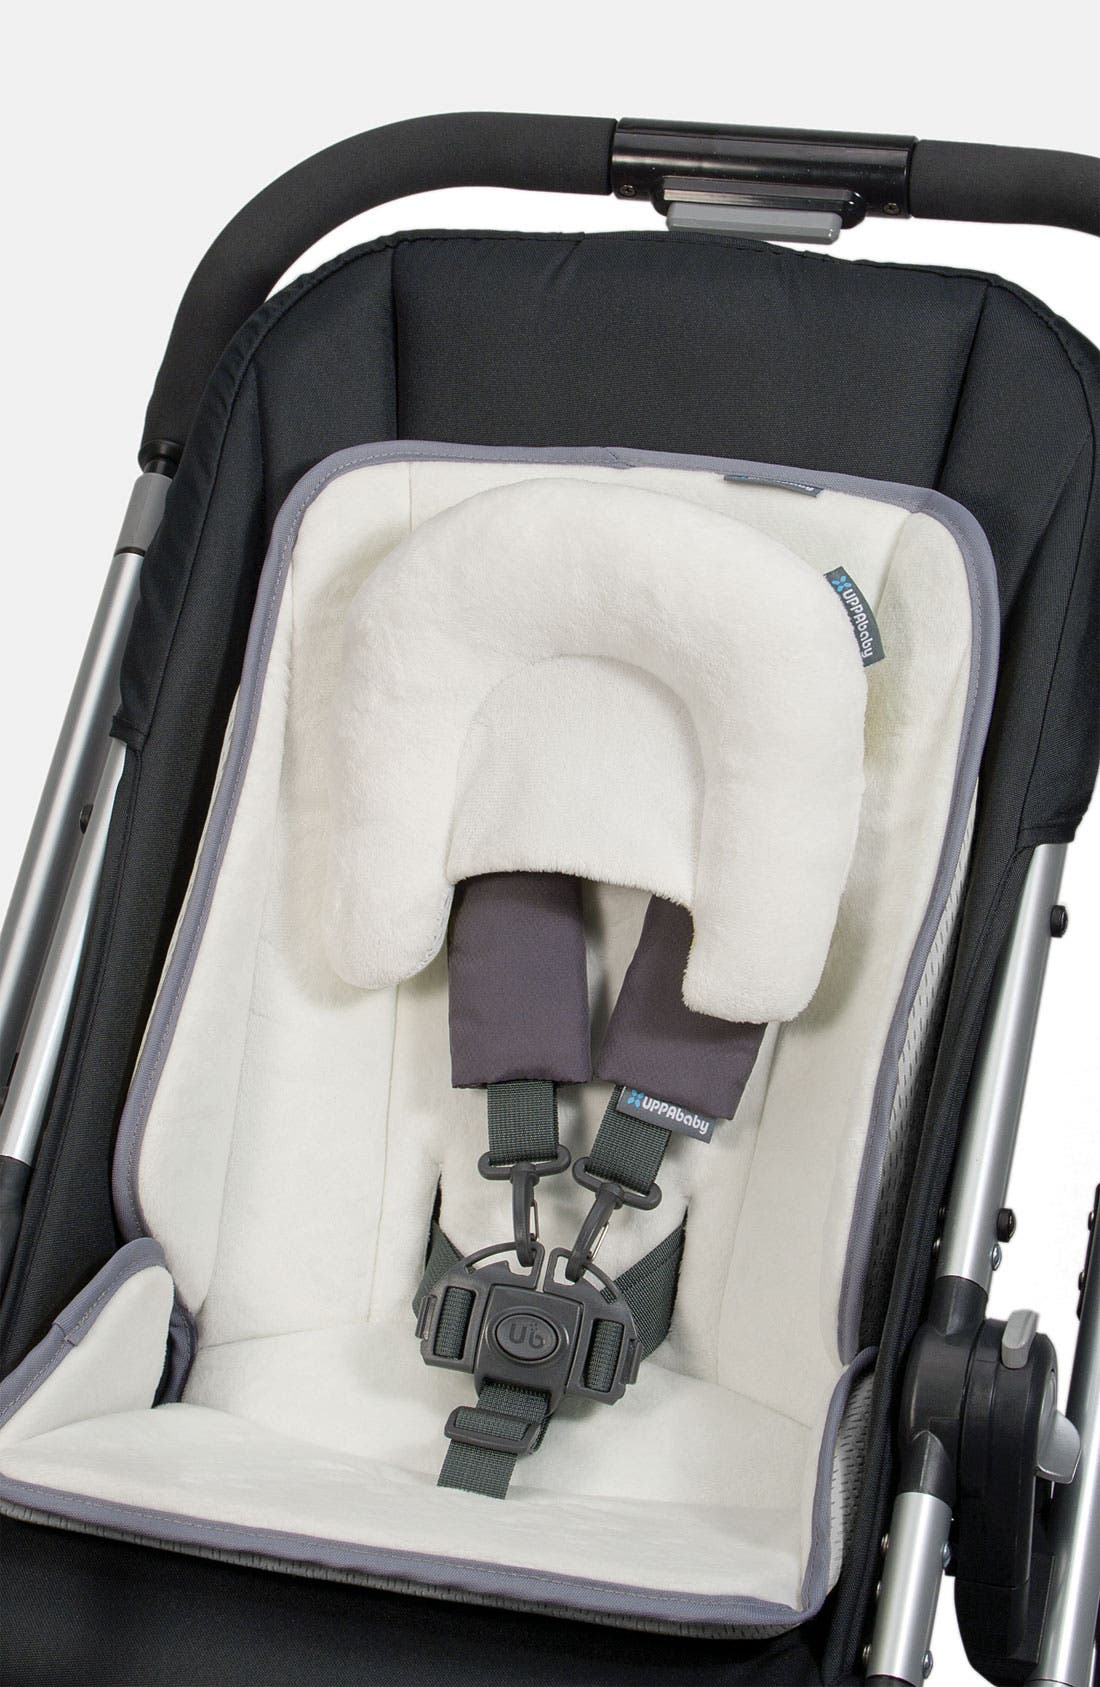 Alternate Image 1 Selected - UPPAbaby VISTA & CRUZ Stroller SnugSeat Toddler Seat Inset